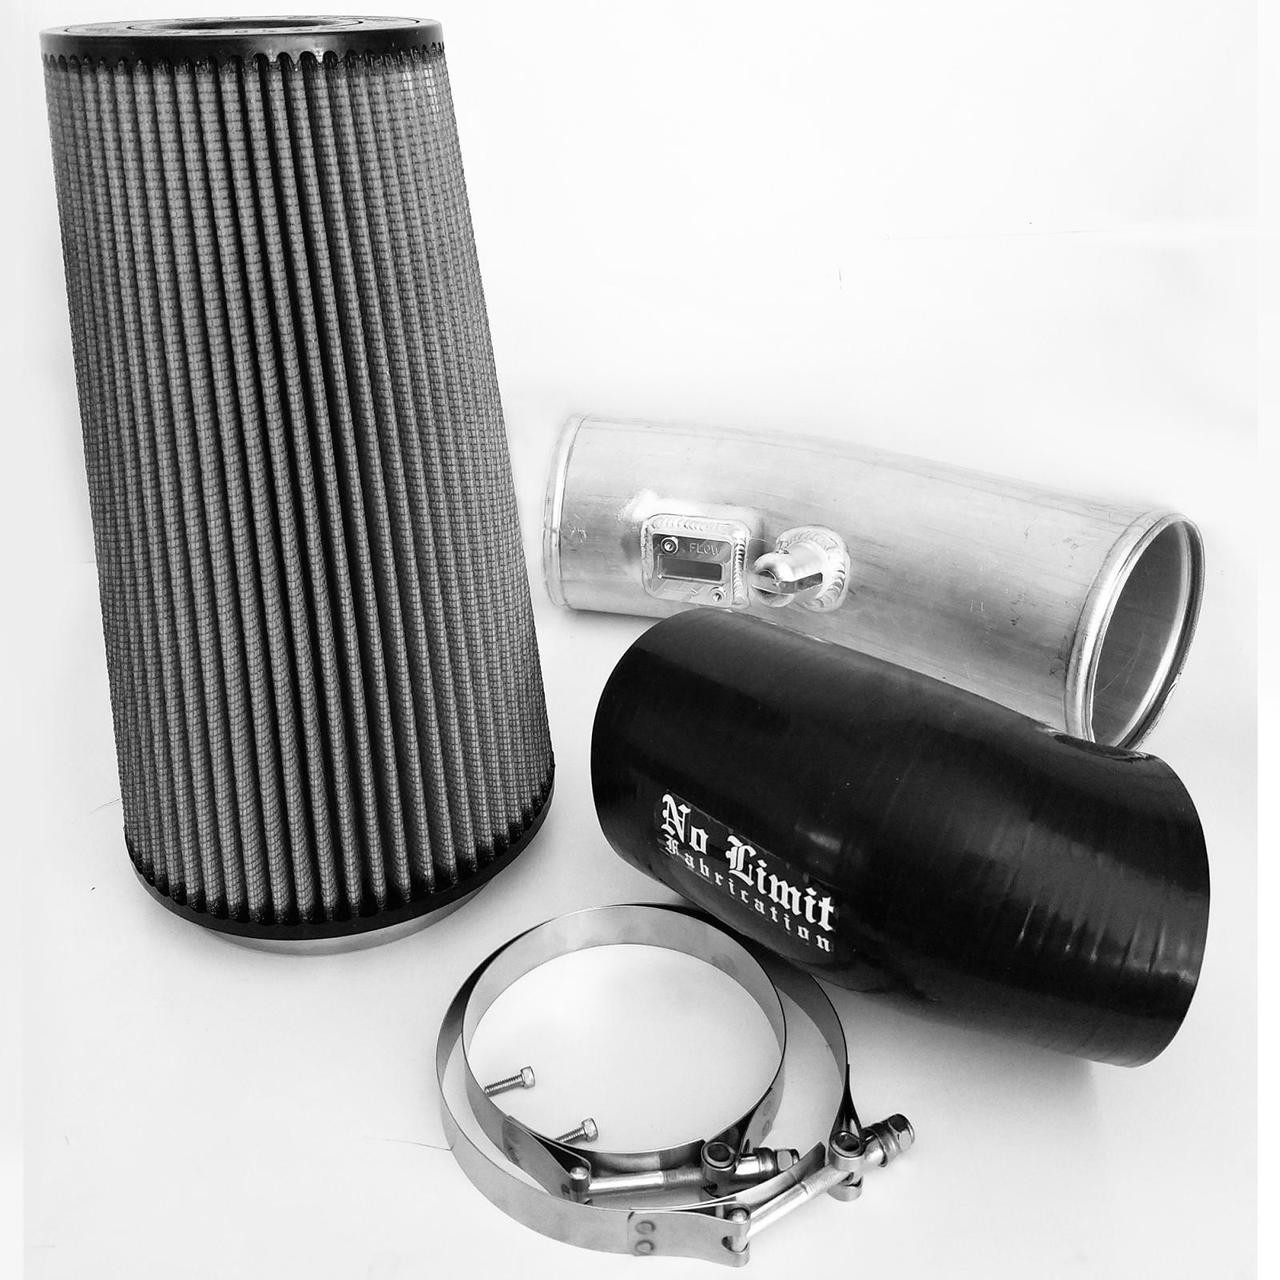 67 Cold Air Intake 11 16 Ford Super Duty Power Stroke Raw Dry Filter Stage 1 No Limit Fabrication